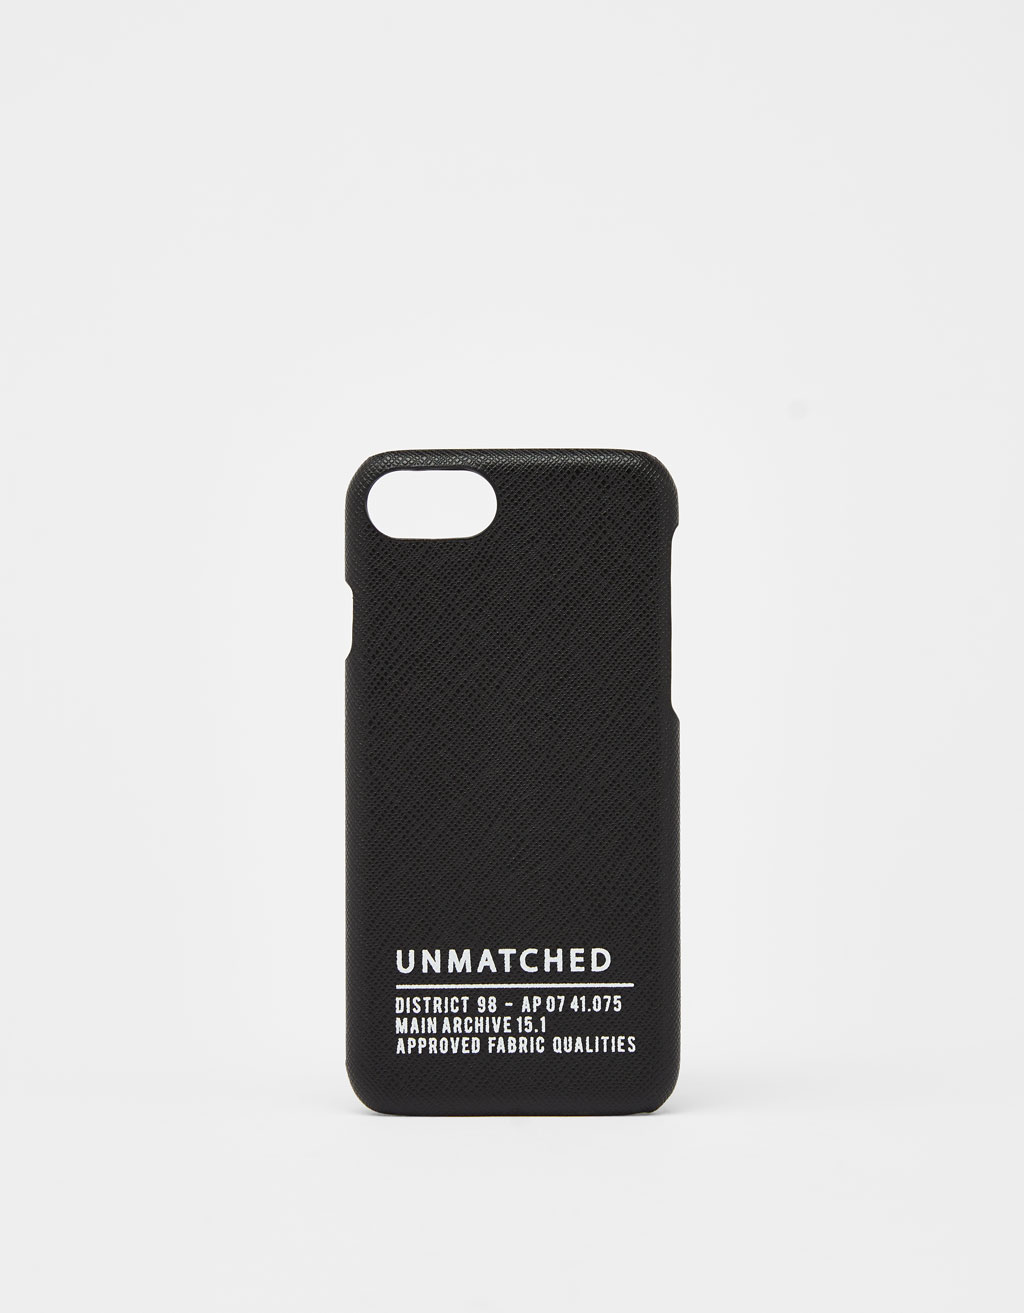 Unmatched iPhone 6 / 6S / 7 / 8 case